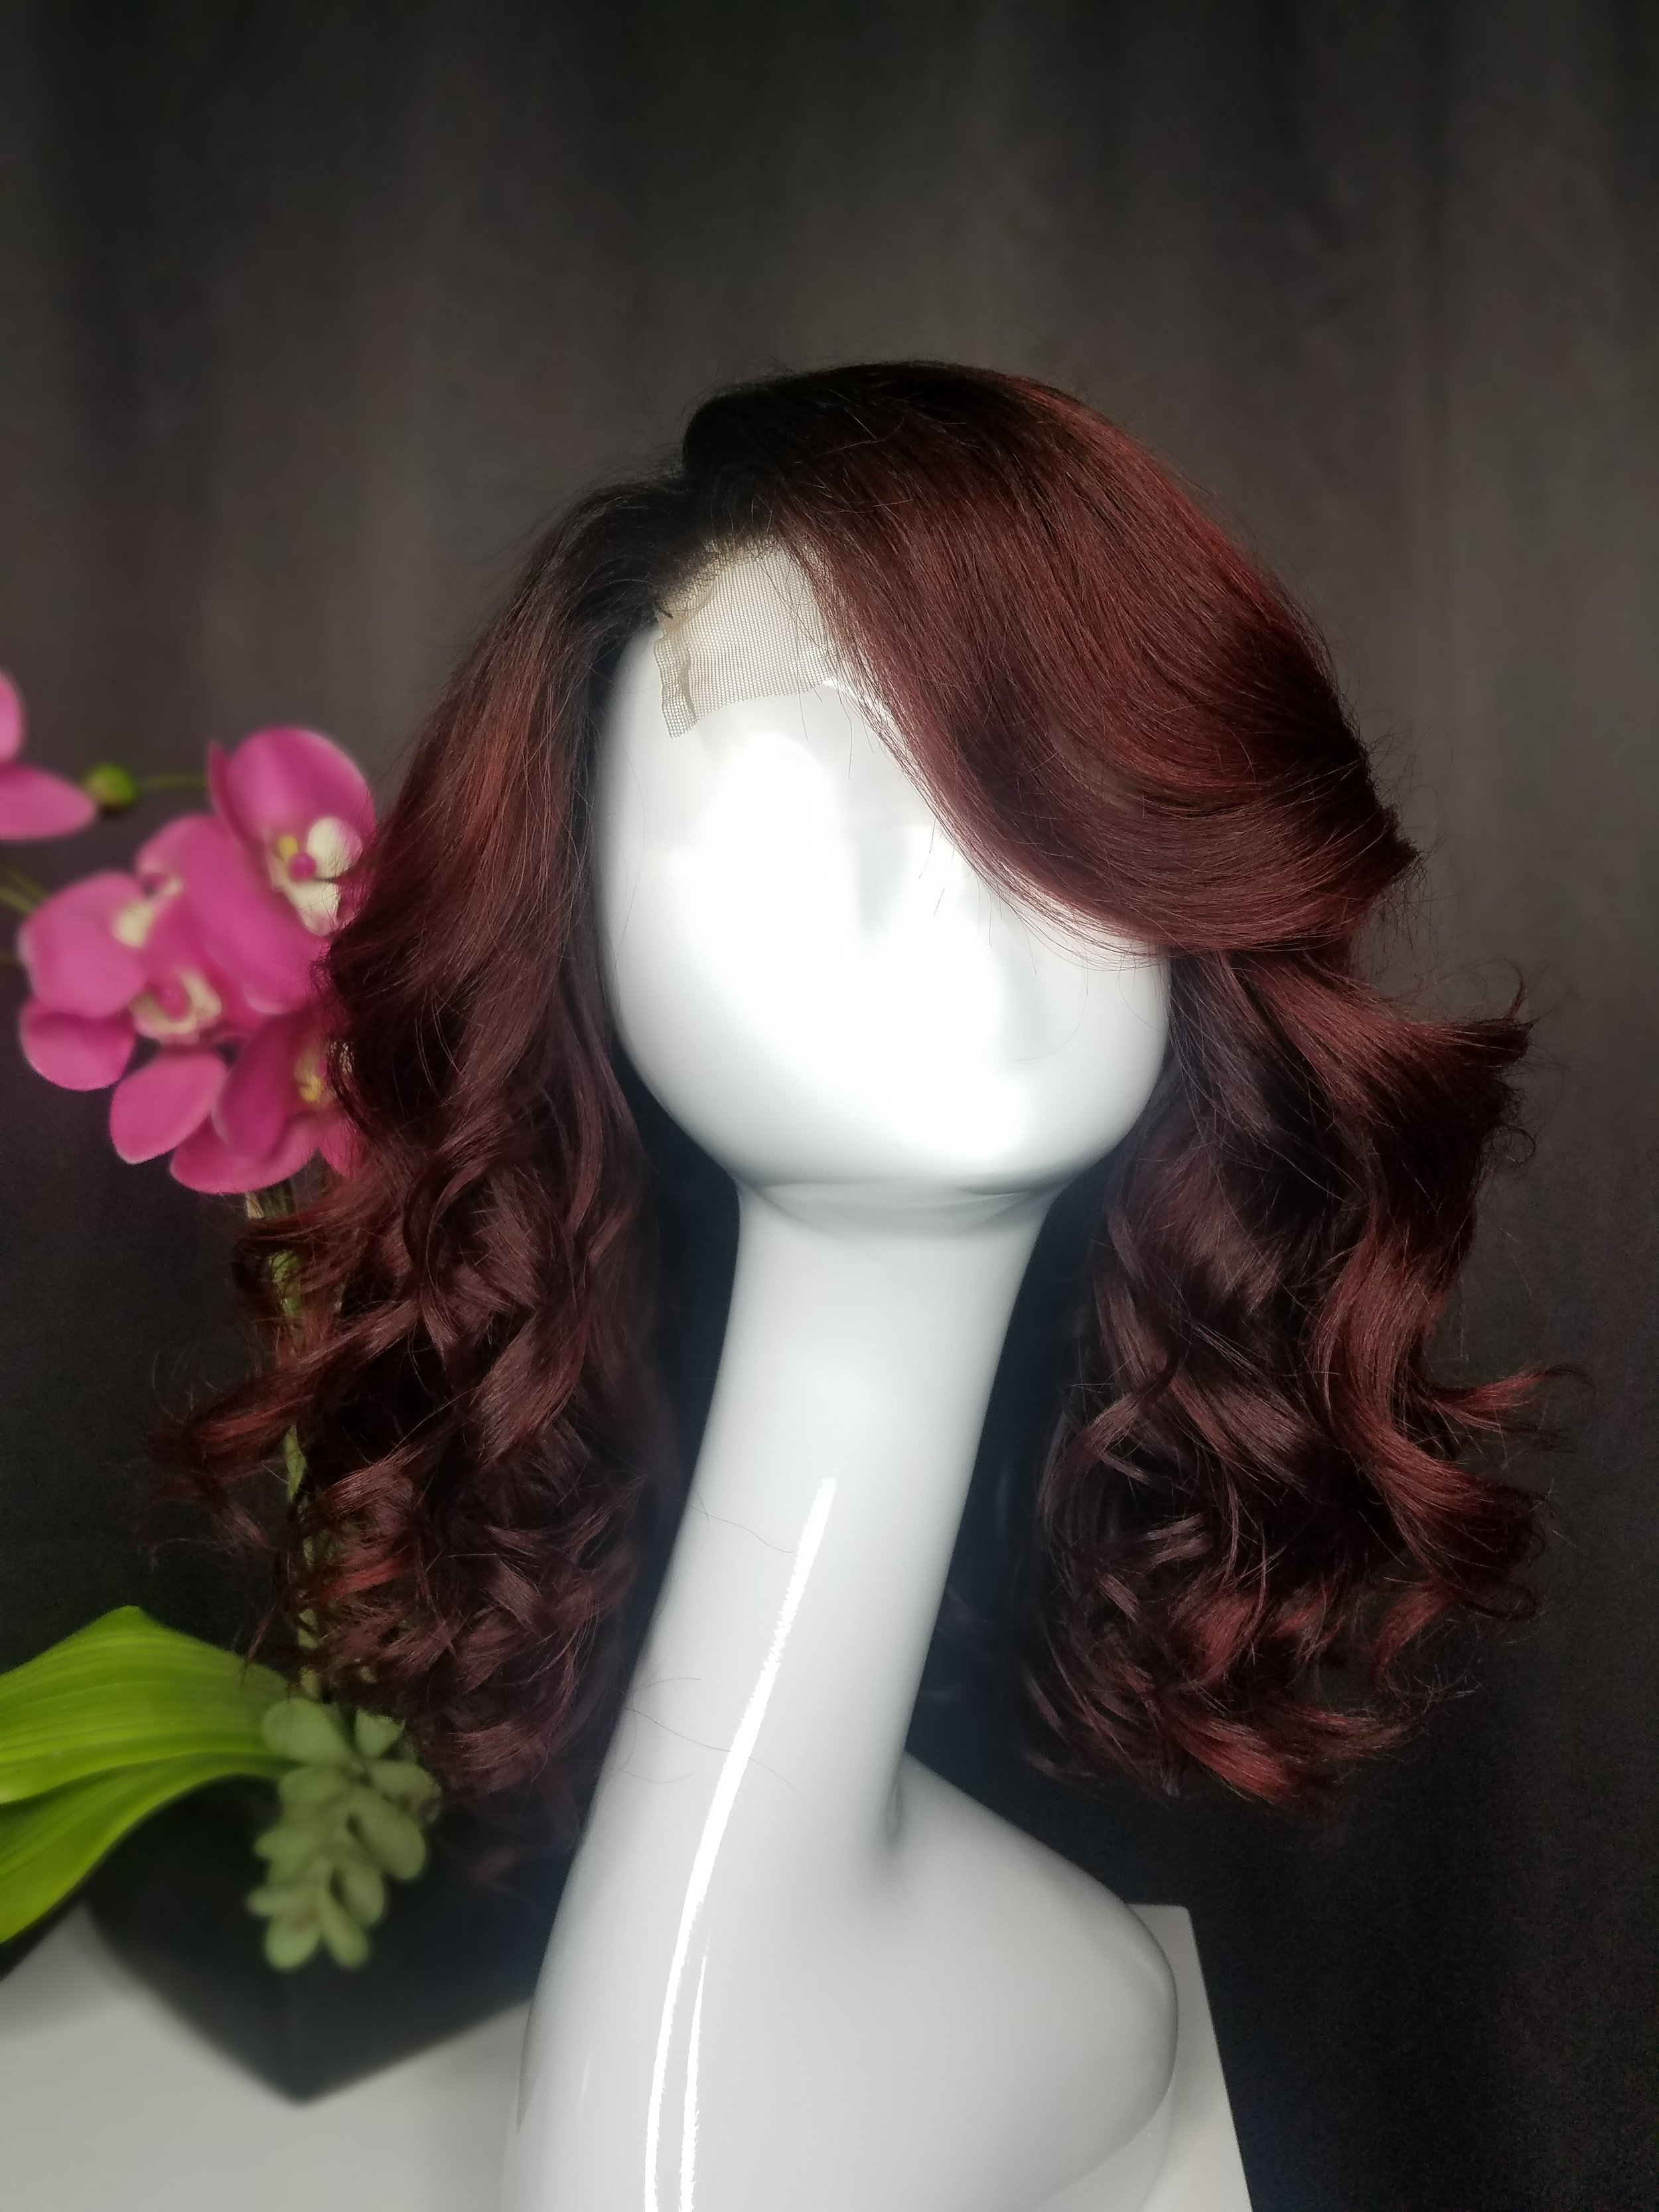 We are in love... - with this red vibe that Big Red is giving us. Goldwells Top Chic is amazing. To book your next Hair Color service with the Crystal Blings Salon, visit our BOOK NOW page.